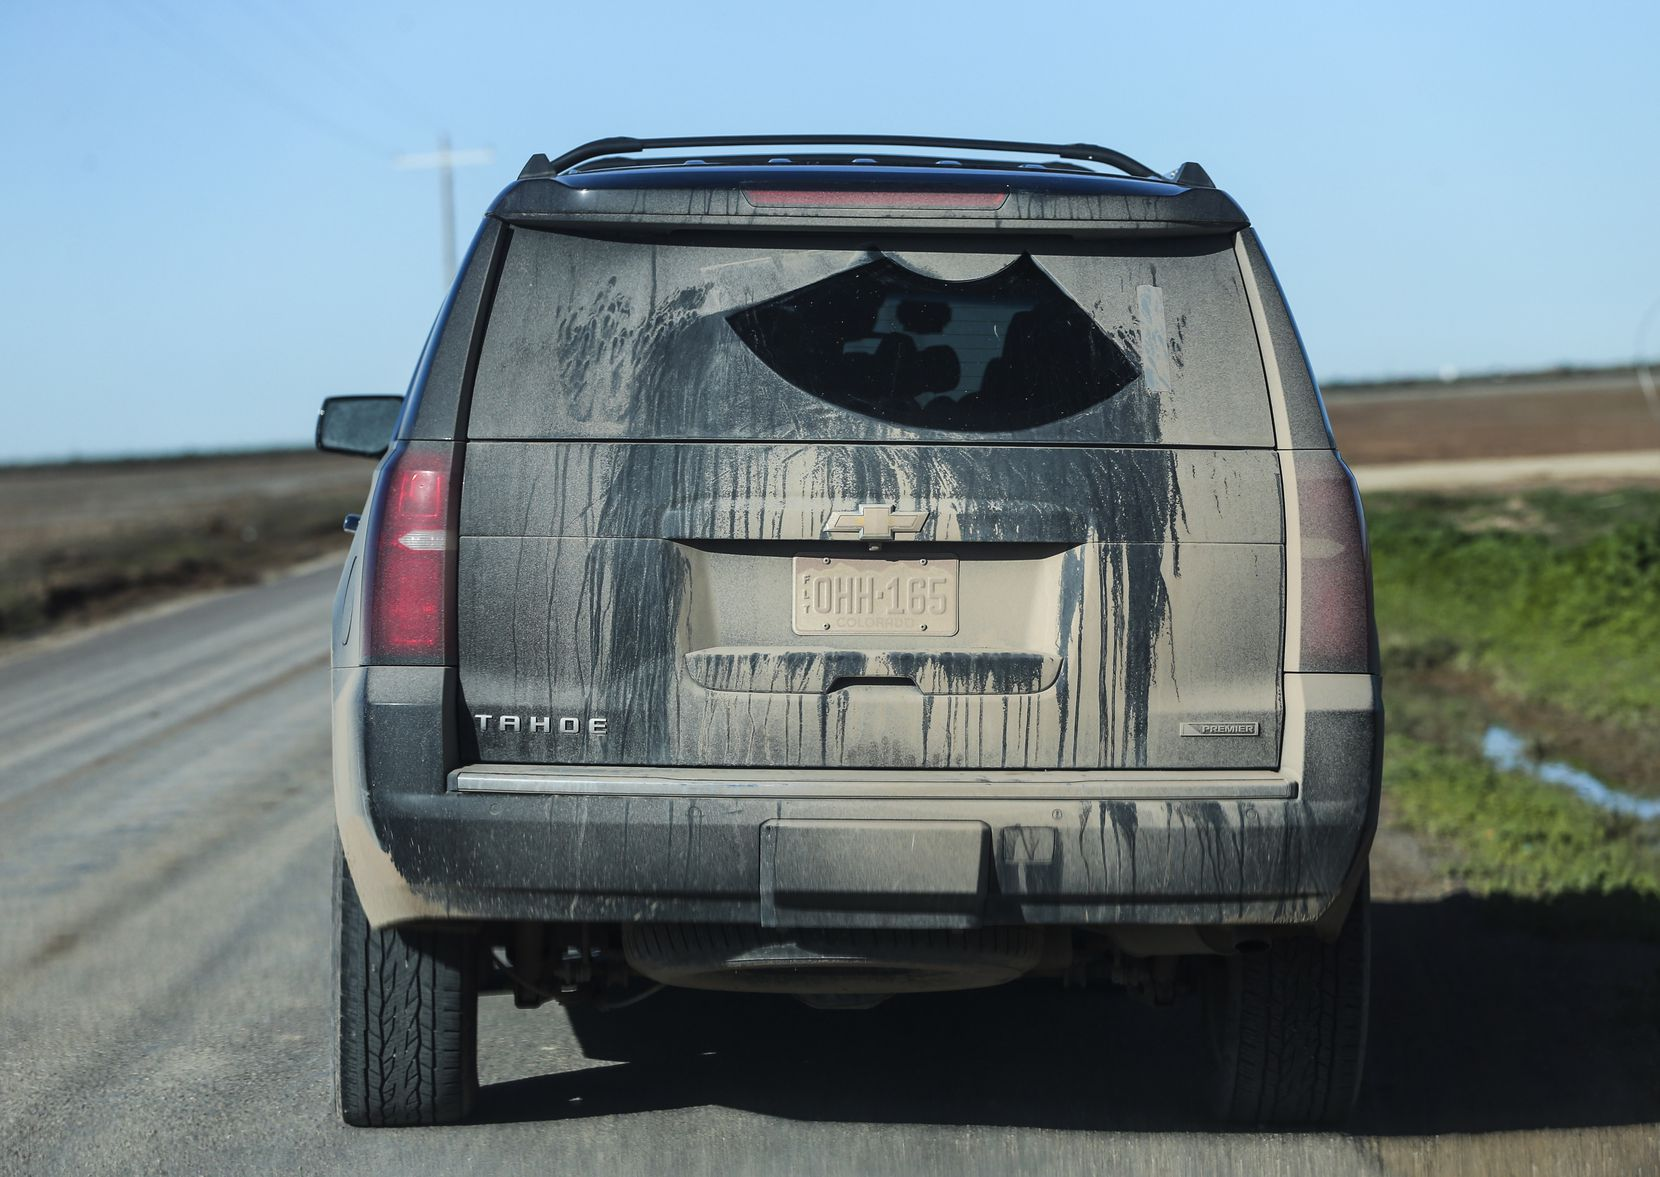 Dust cakes the back of Sharon Wilson and Alan Septoff's  black rental SUV as they ply Permian Basin backroads looking for emission violations.